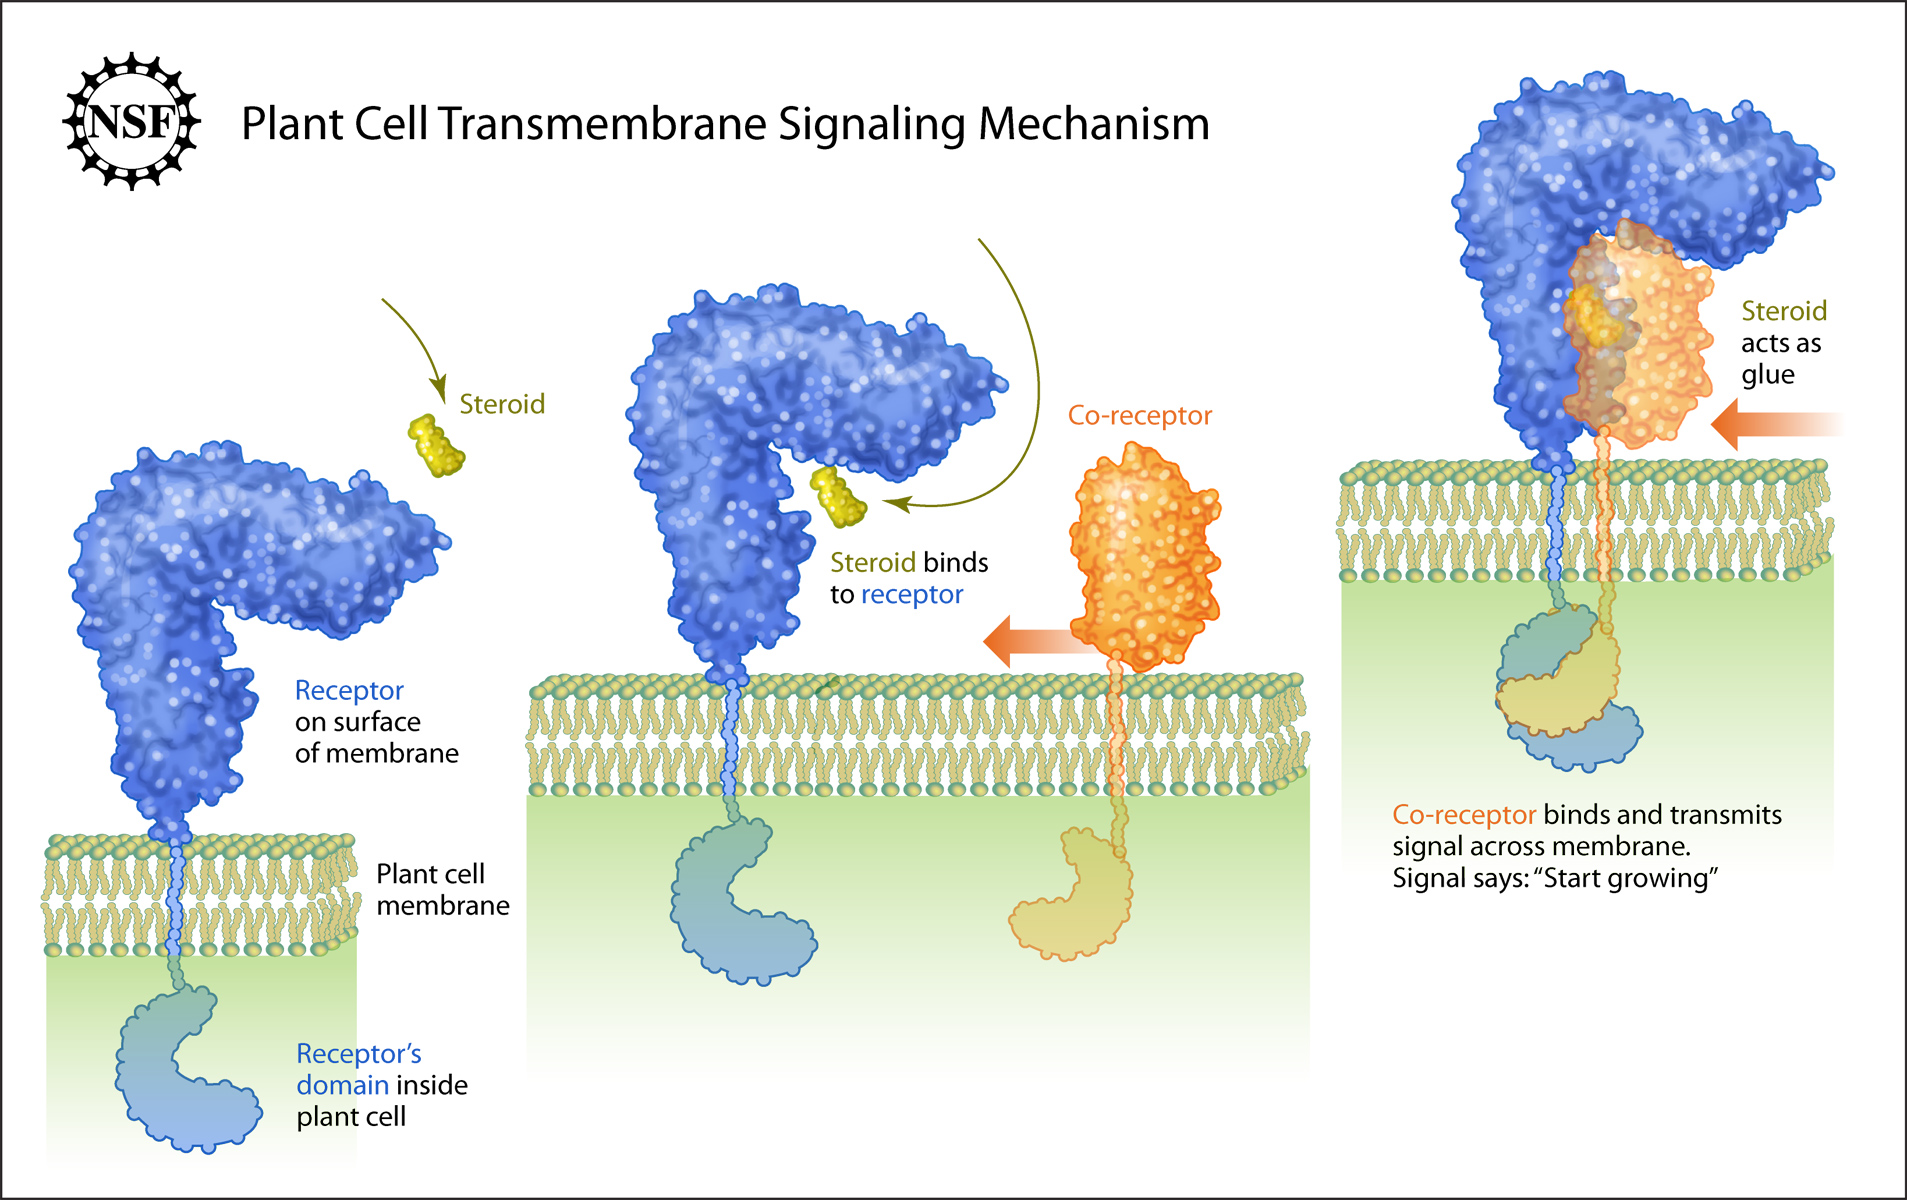 Press Structural Plant Biology Laboratory 3d Cell Diagram For Kids Animal Model Project Parts Transmembrane Signaling In A Aided By Steroid Credit Zina Deretsky